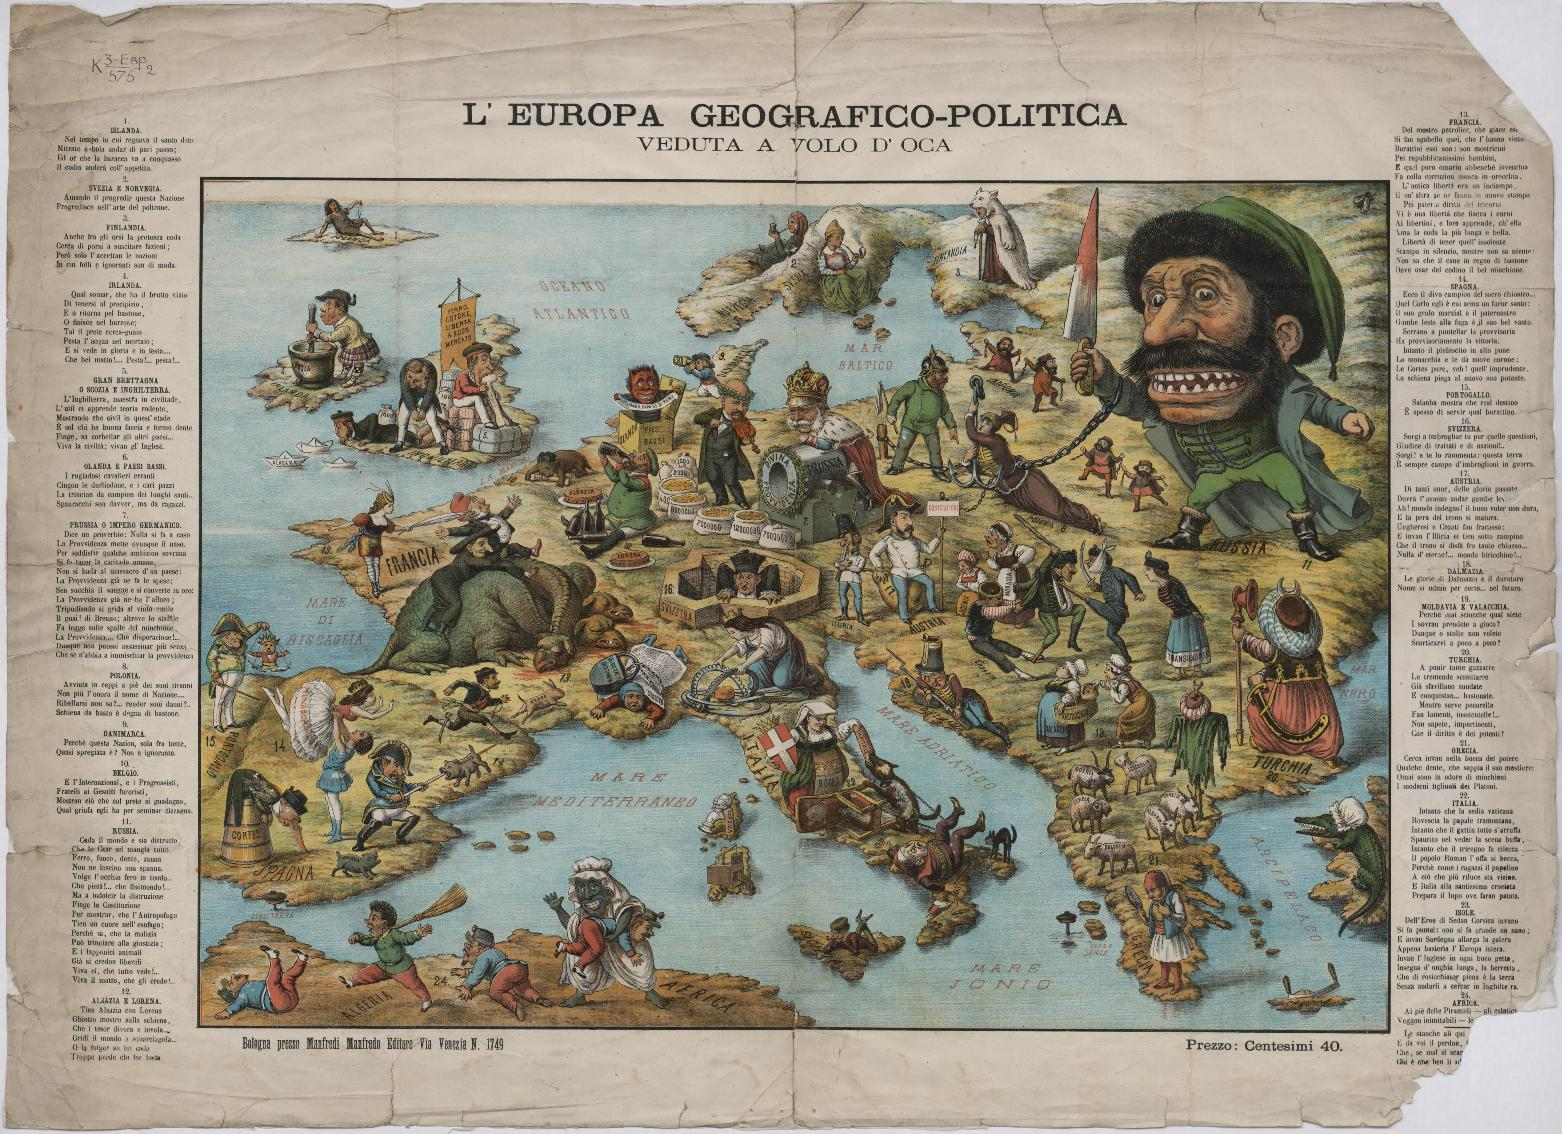 19th century   Context for this 1871 humorous map of Europe     L Europa geografico politica veduta a vola d oca